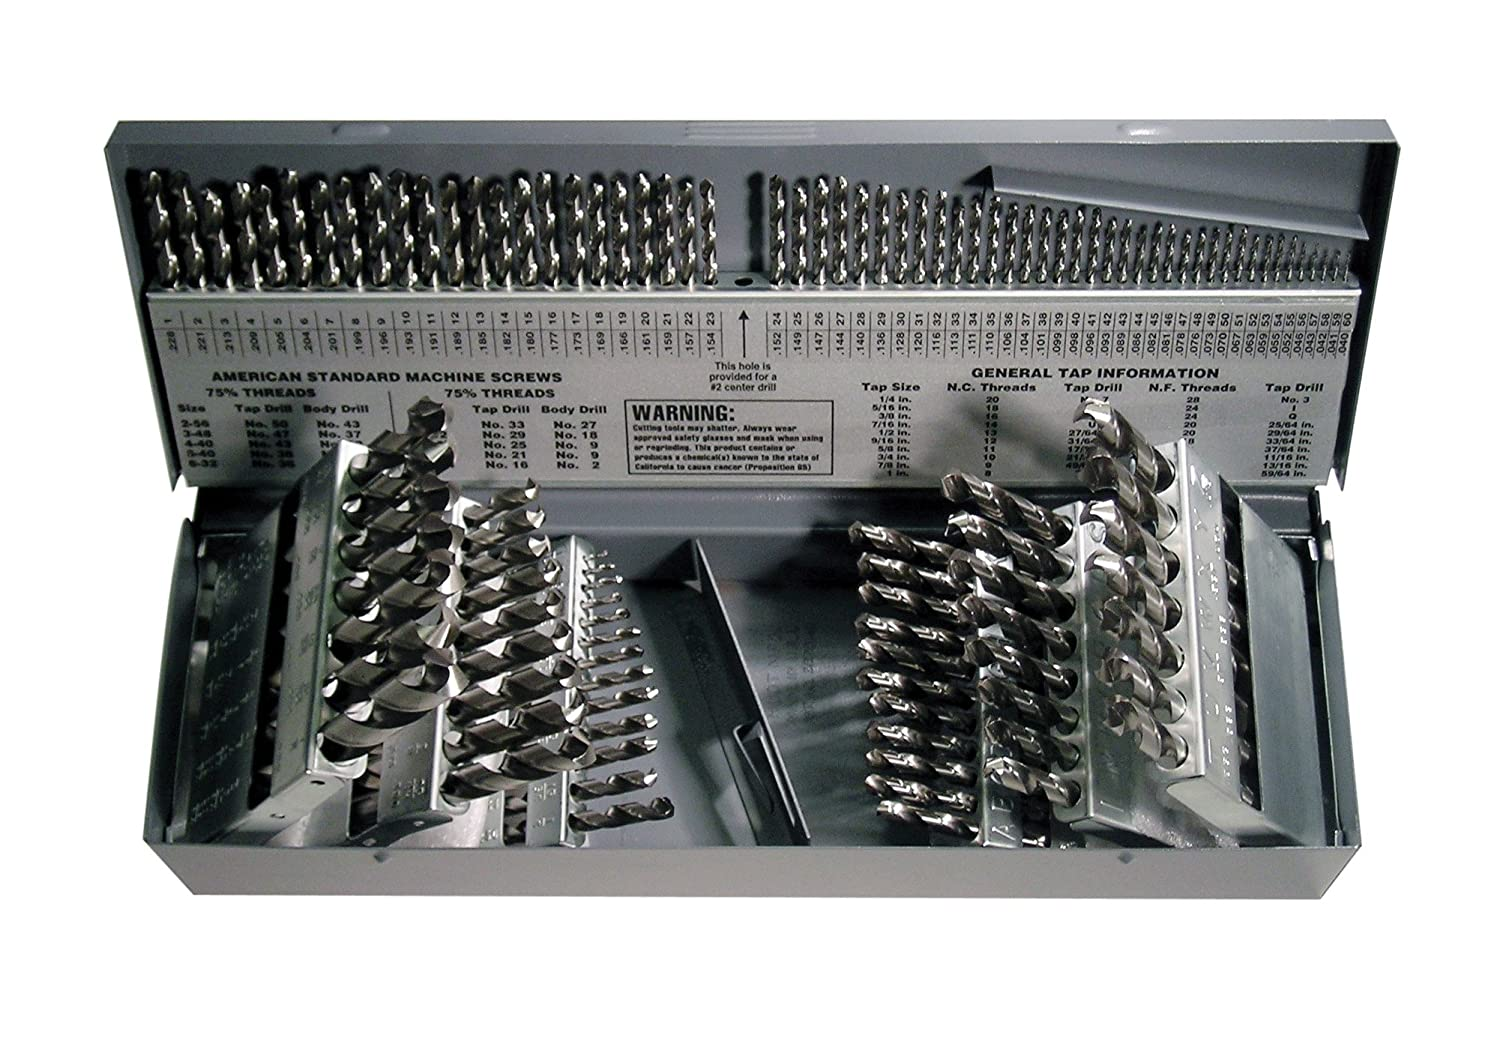 Cleveland C01330 CLE-MAX 115 Piece High-Speed Steel General Purpose Jobber Length Drill Bit Set, Uncoated (Bright) Finish, Spiral Flute, 118 Degrees Point, 1/16 to 1/2, A to Z, #1 to #60 Size by Cleveland B00E4AWUH8